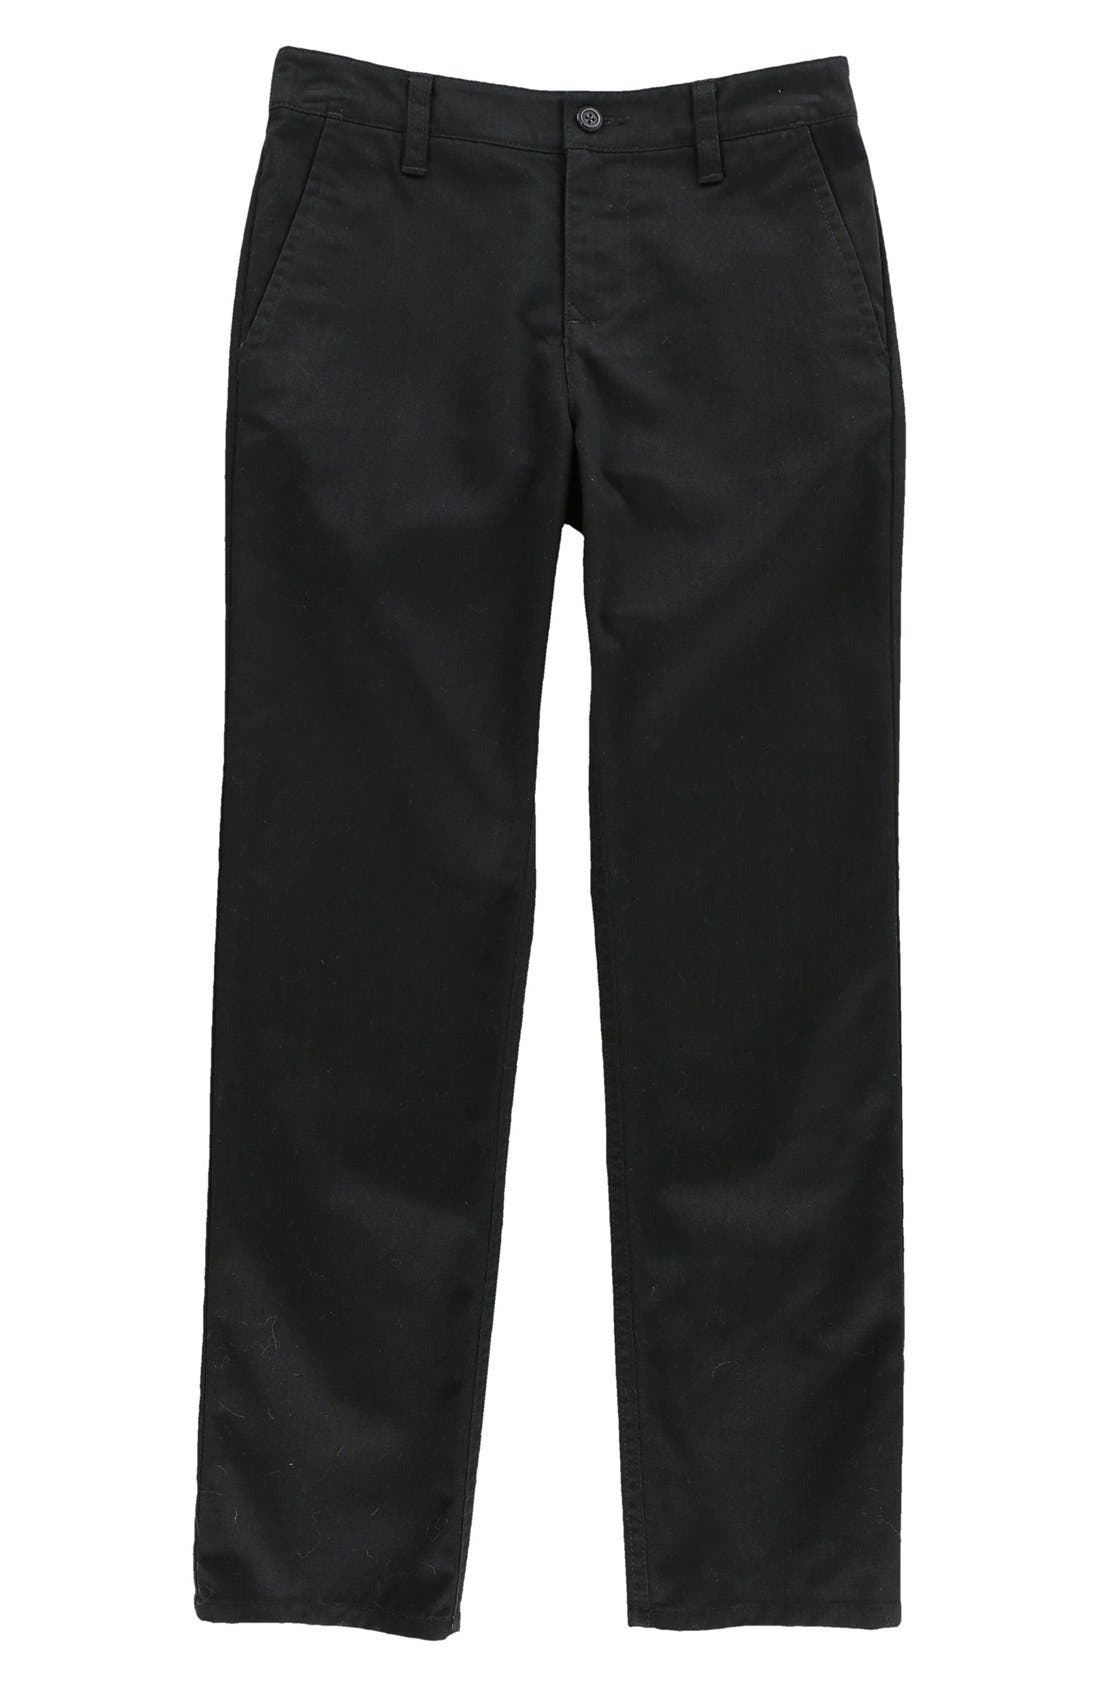 Contact Straight Leg Twill Pants,                             Main thumbnail 1, color,                             001